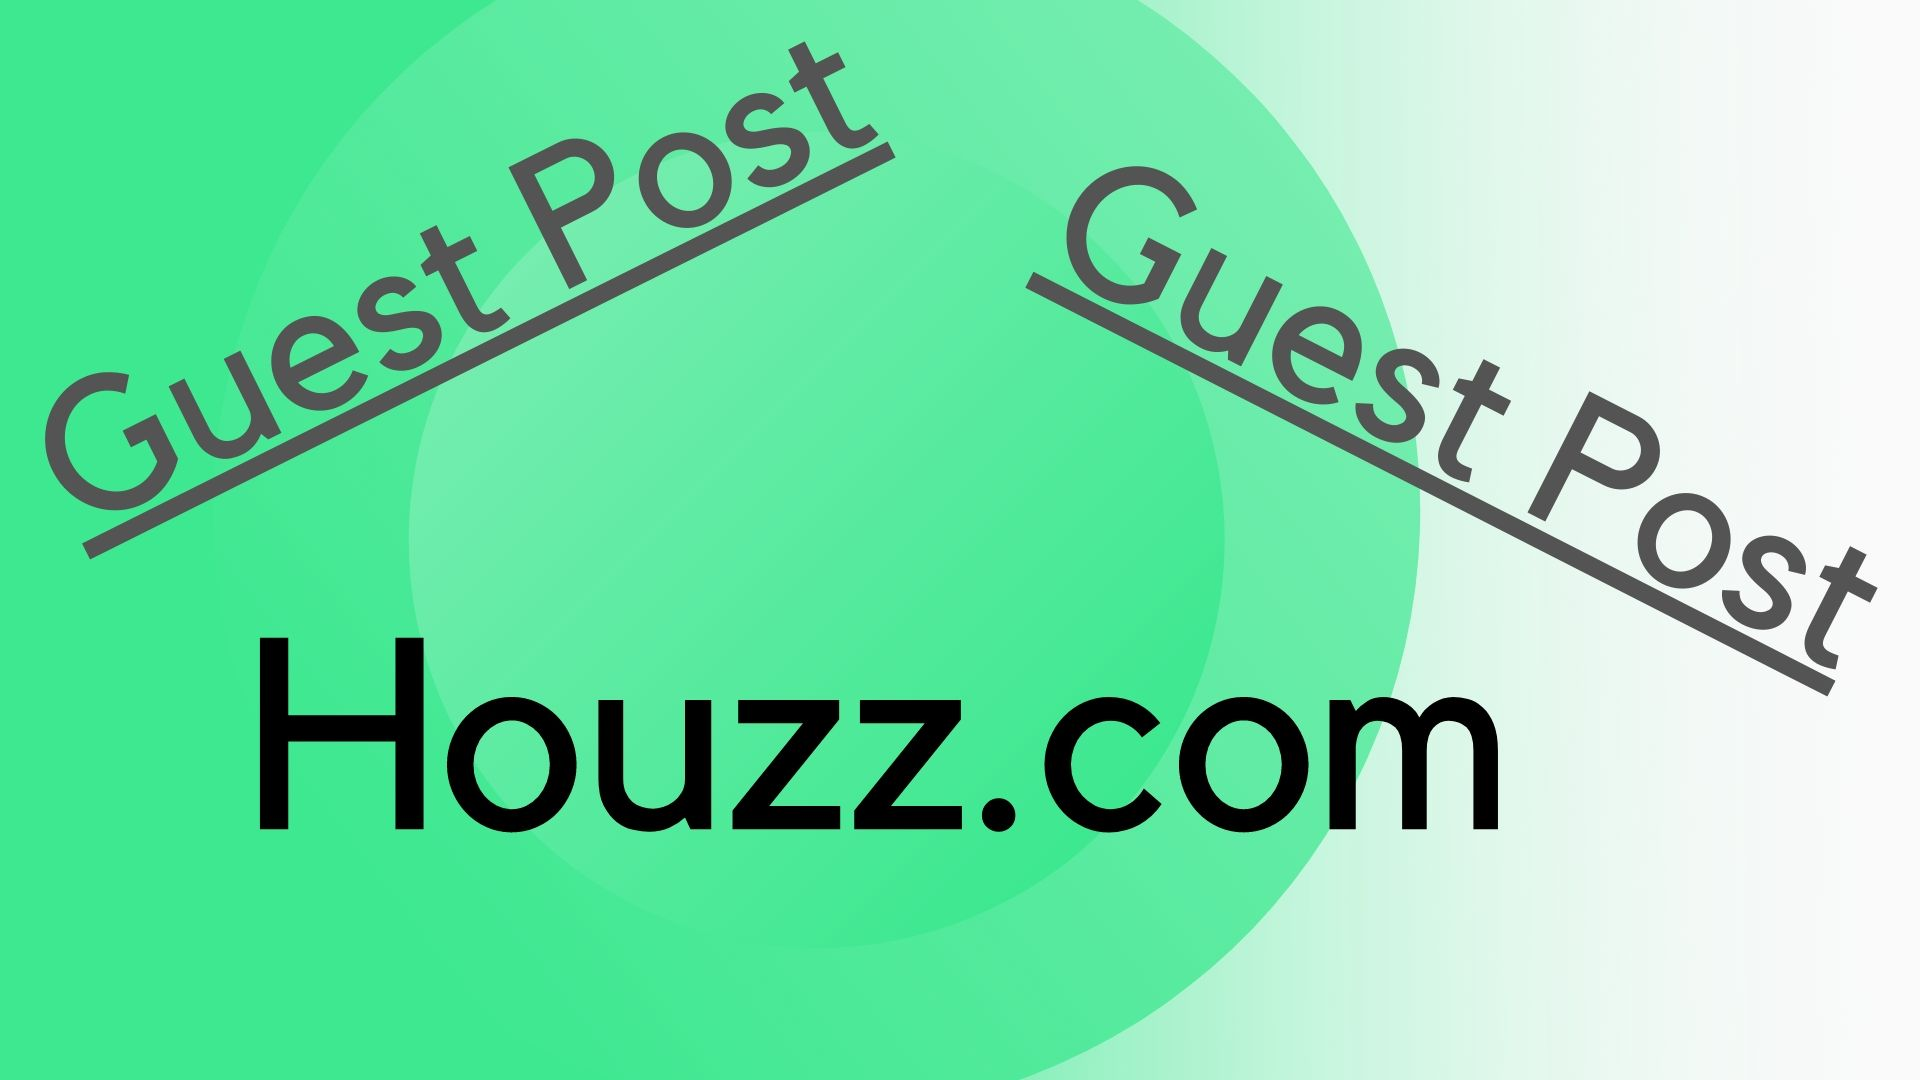 Write and publish guest post houzz. com/